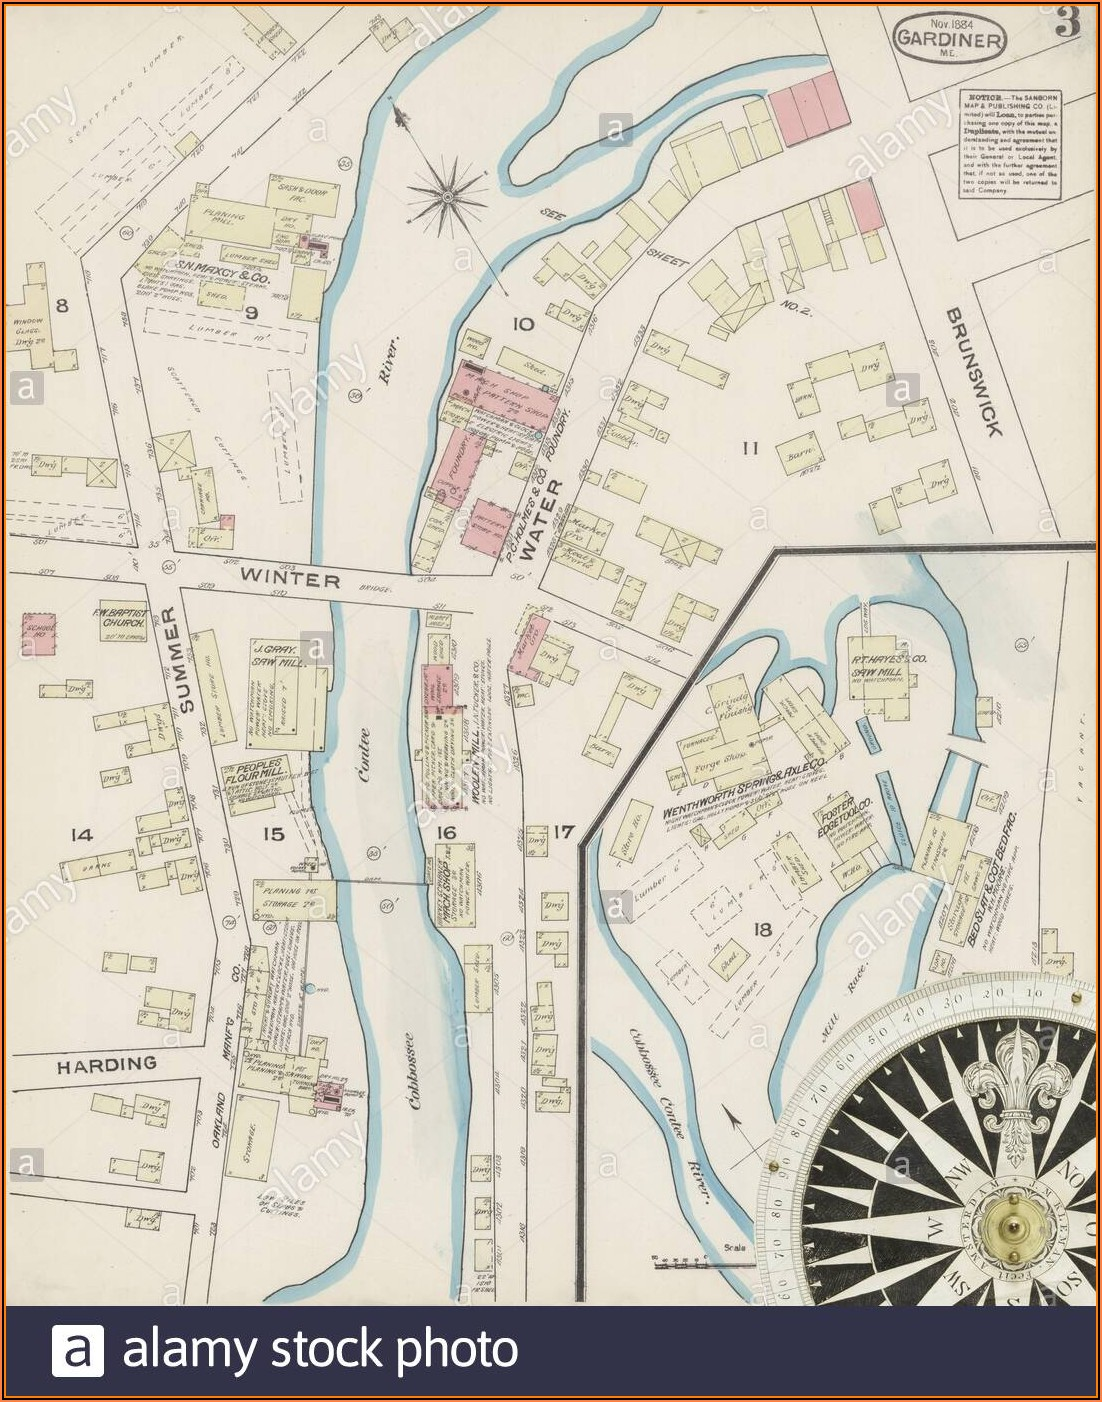 Street Map Of Gardiner Maine